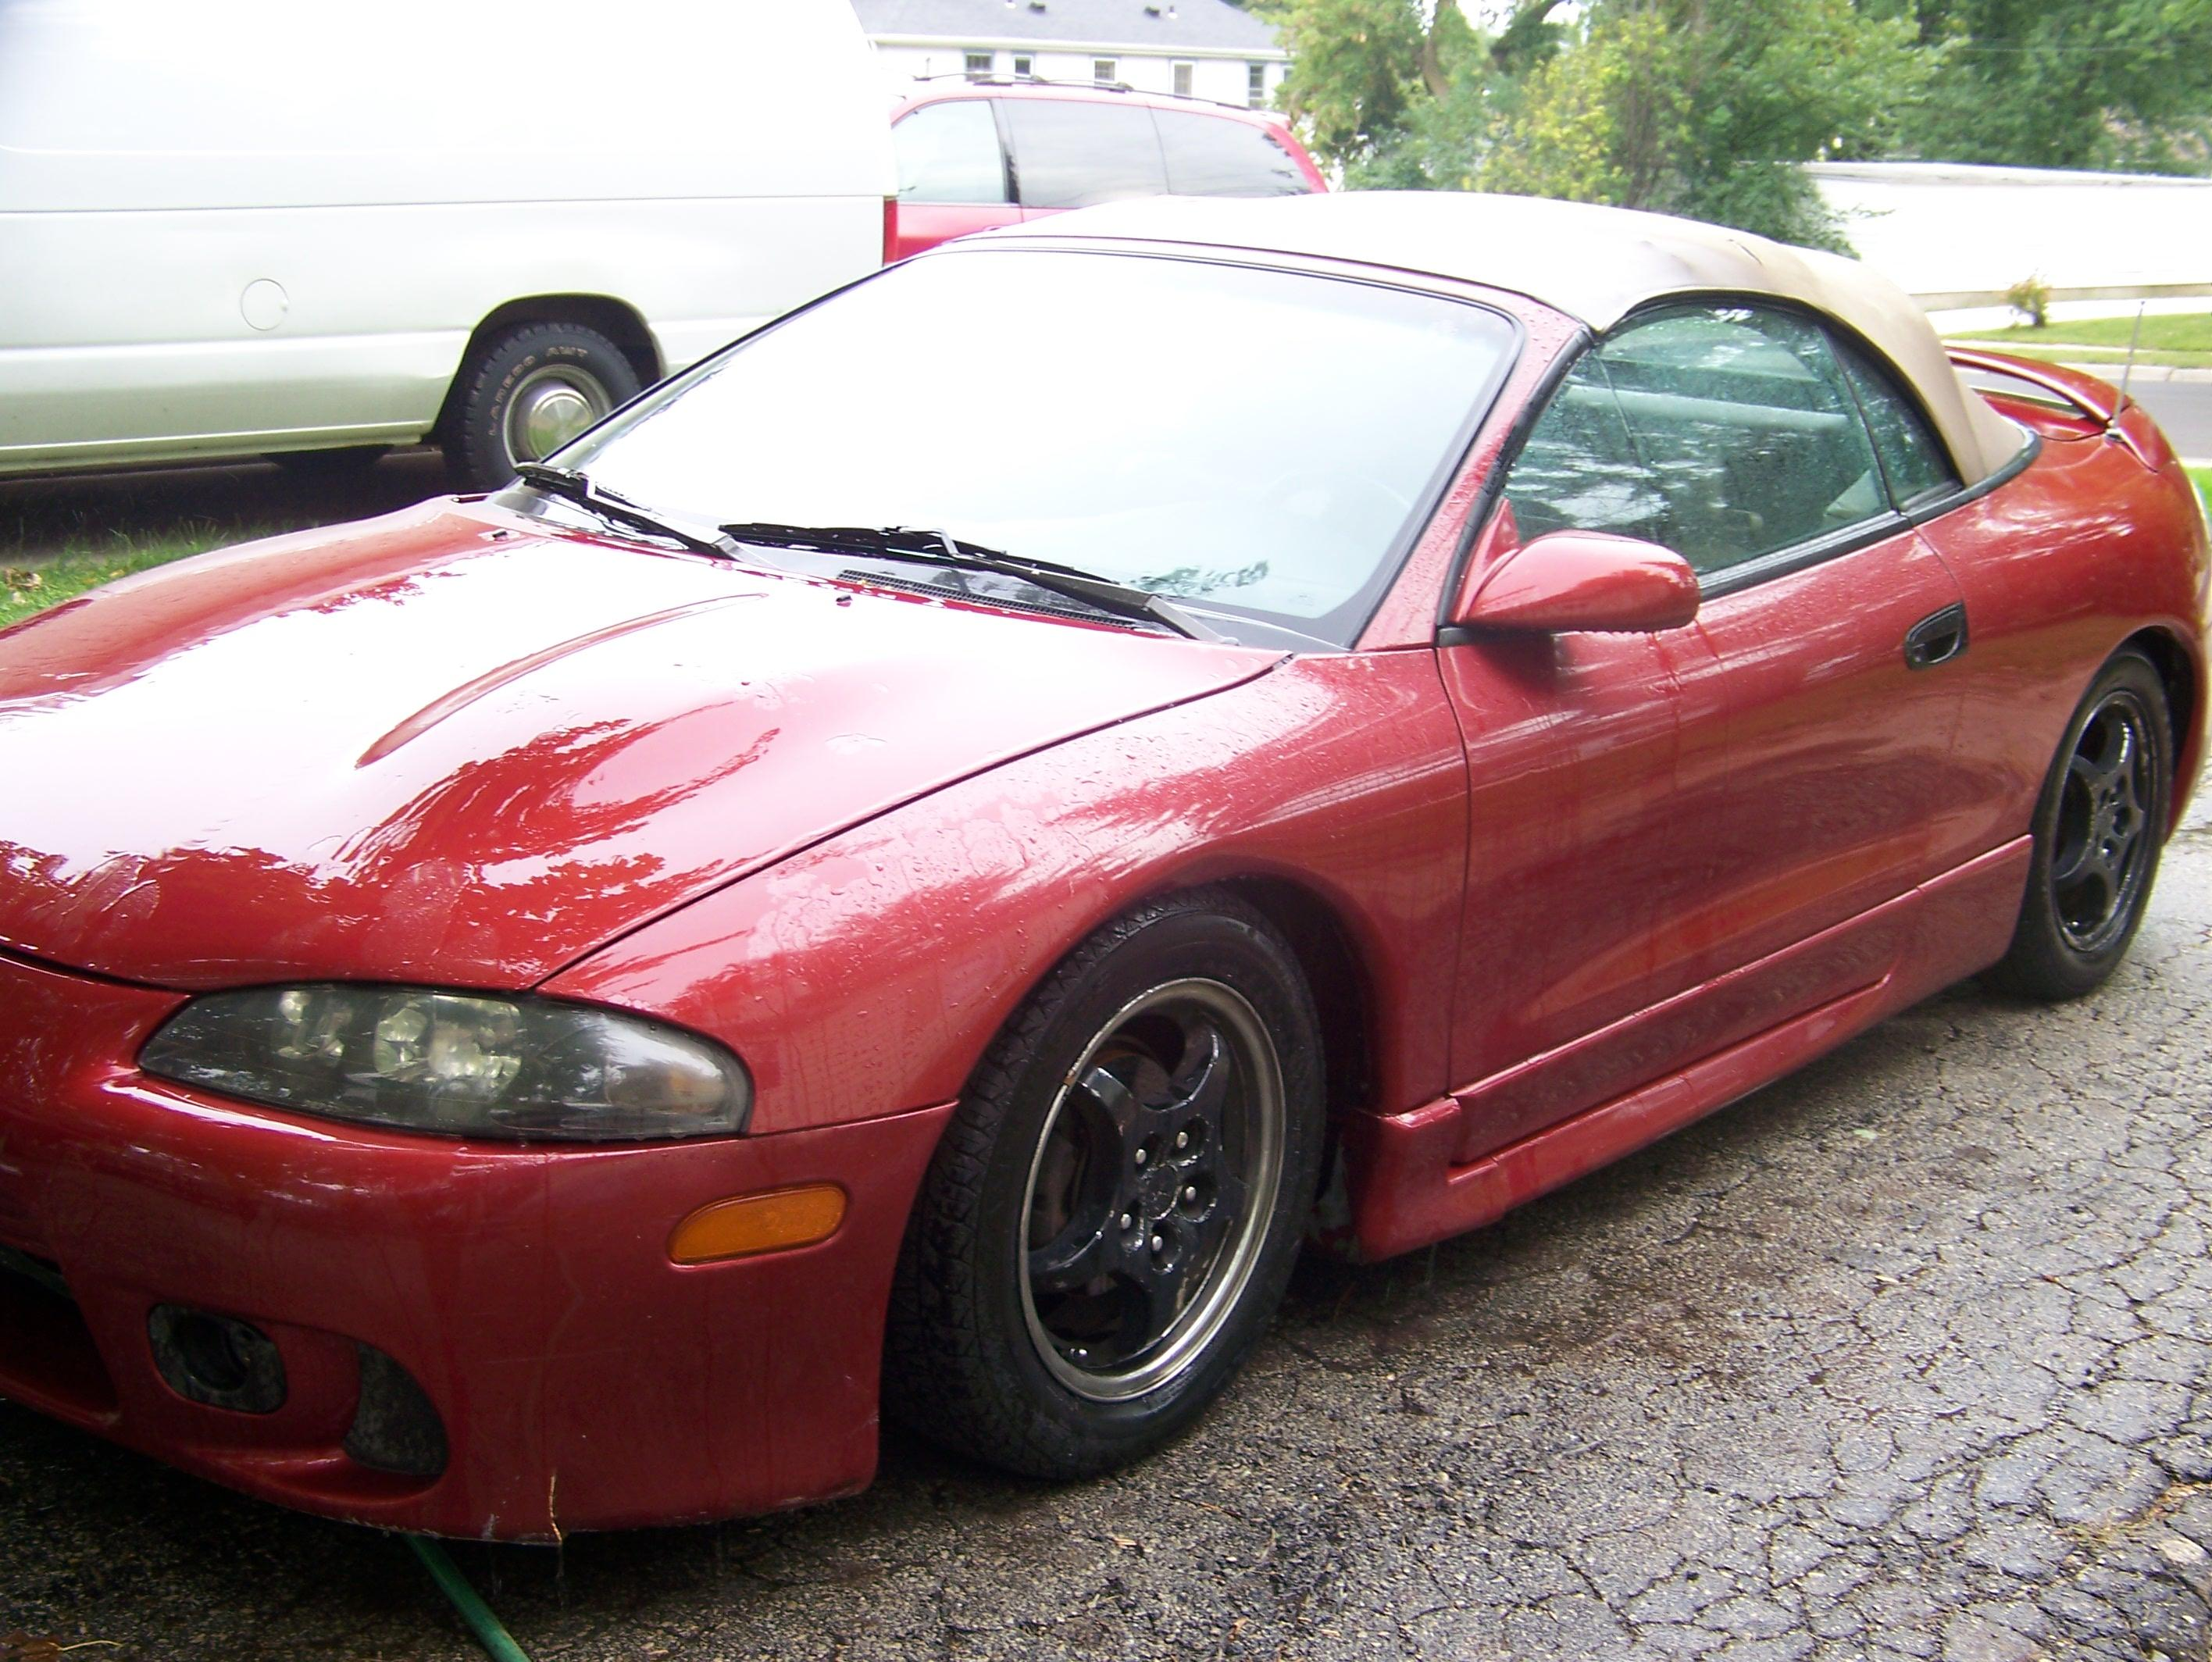 ace956 39 s 1997 mitsubishi eclipse gs t spyder convertible 2d in green bay wi. Black Bedroom Furniture Sets. Home Design Ideas